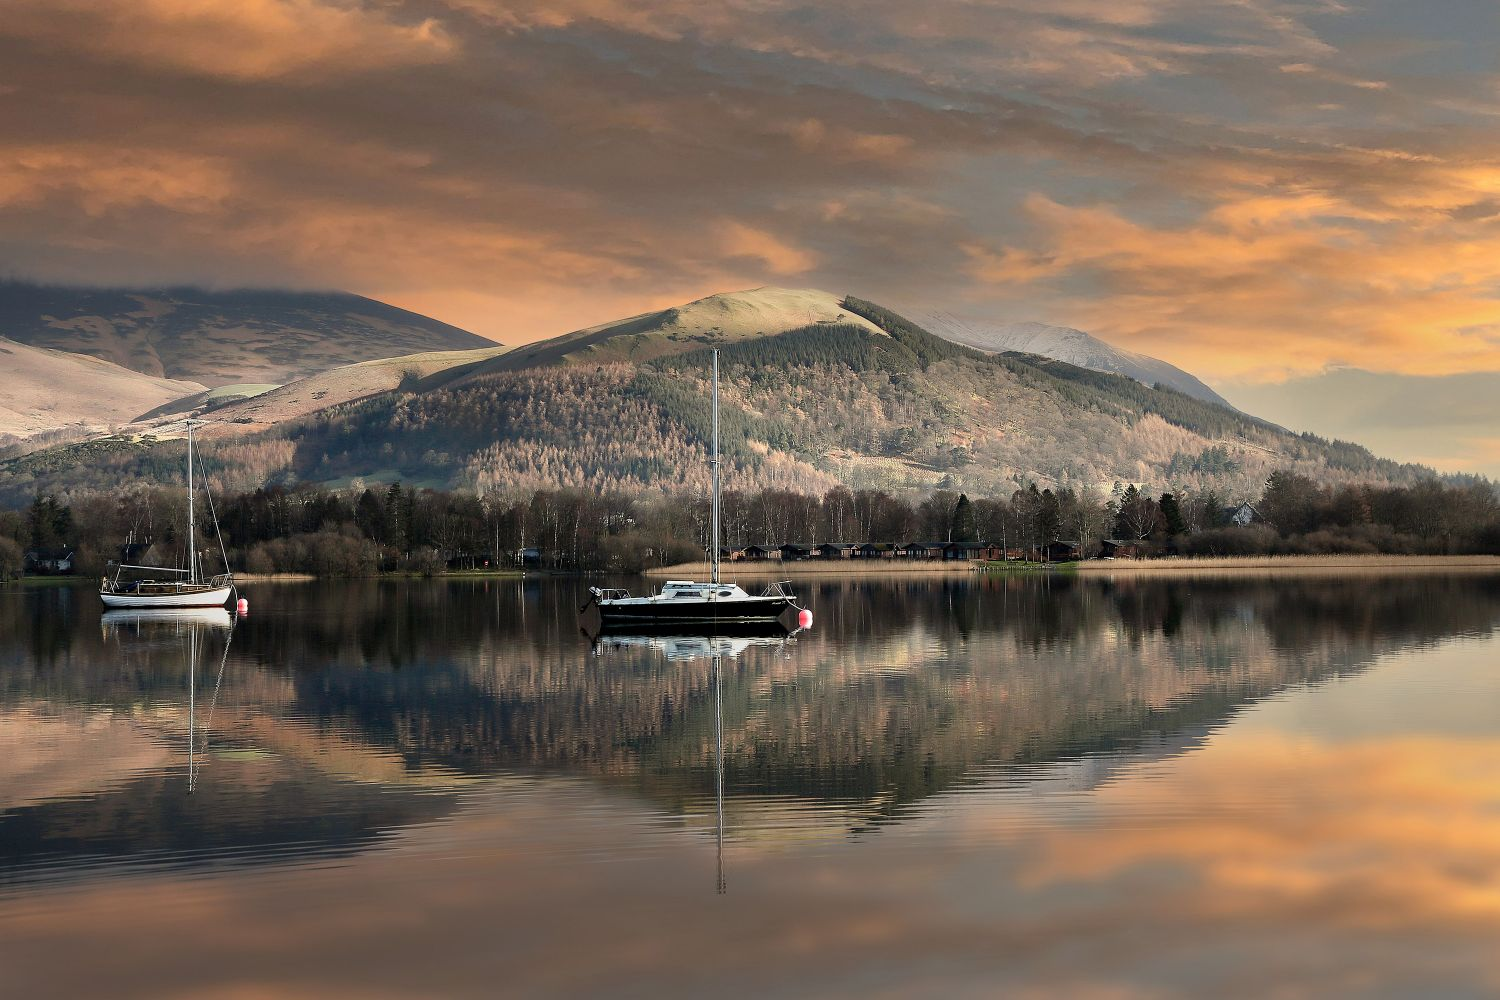 Sunrise over Latrigg from Portinscale by Martin Lawrence